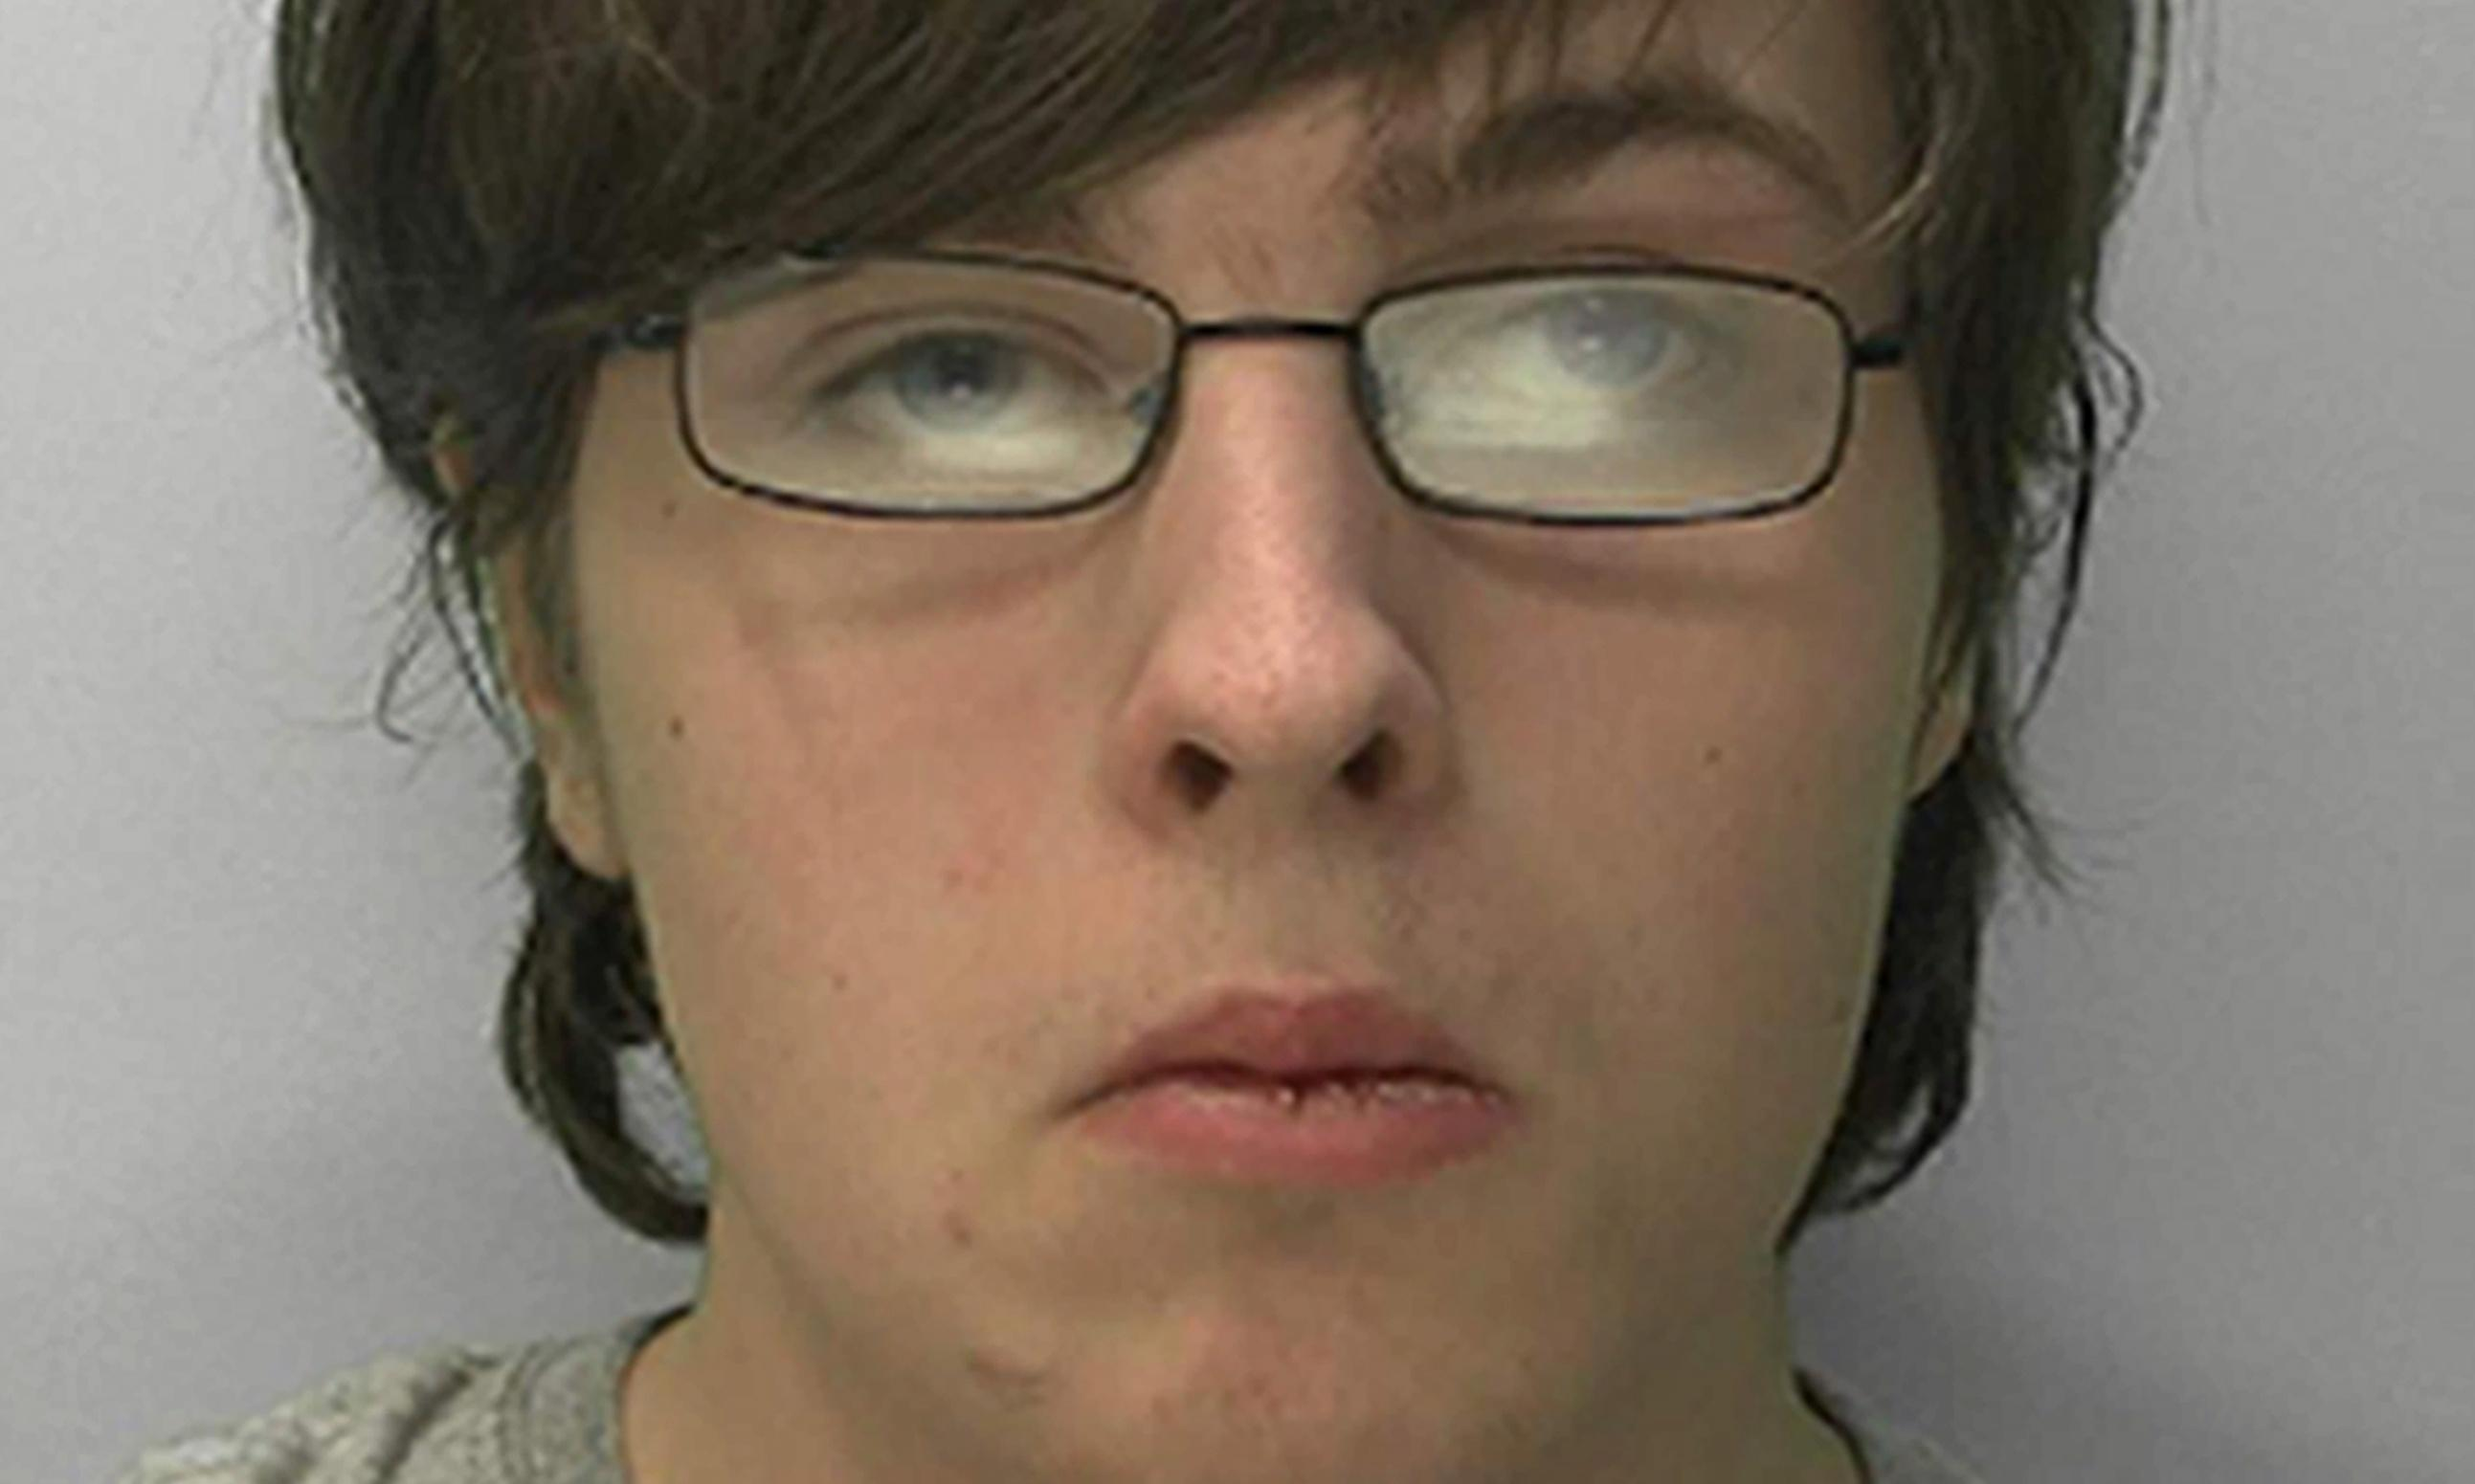 Teenager jailed for 16 years after buying handgun on dark web